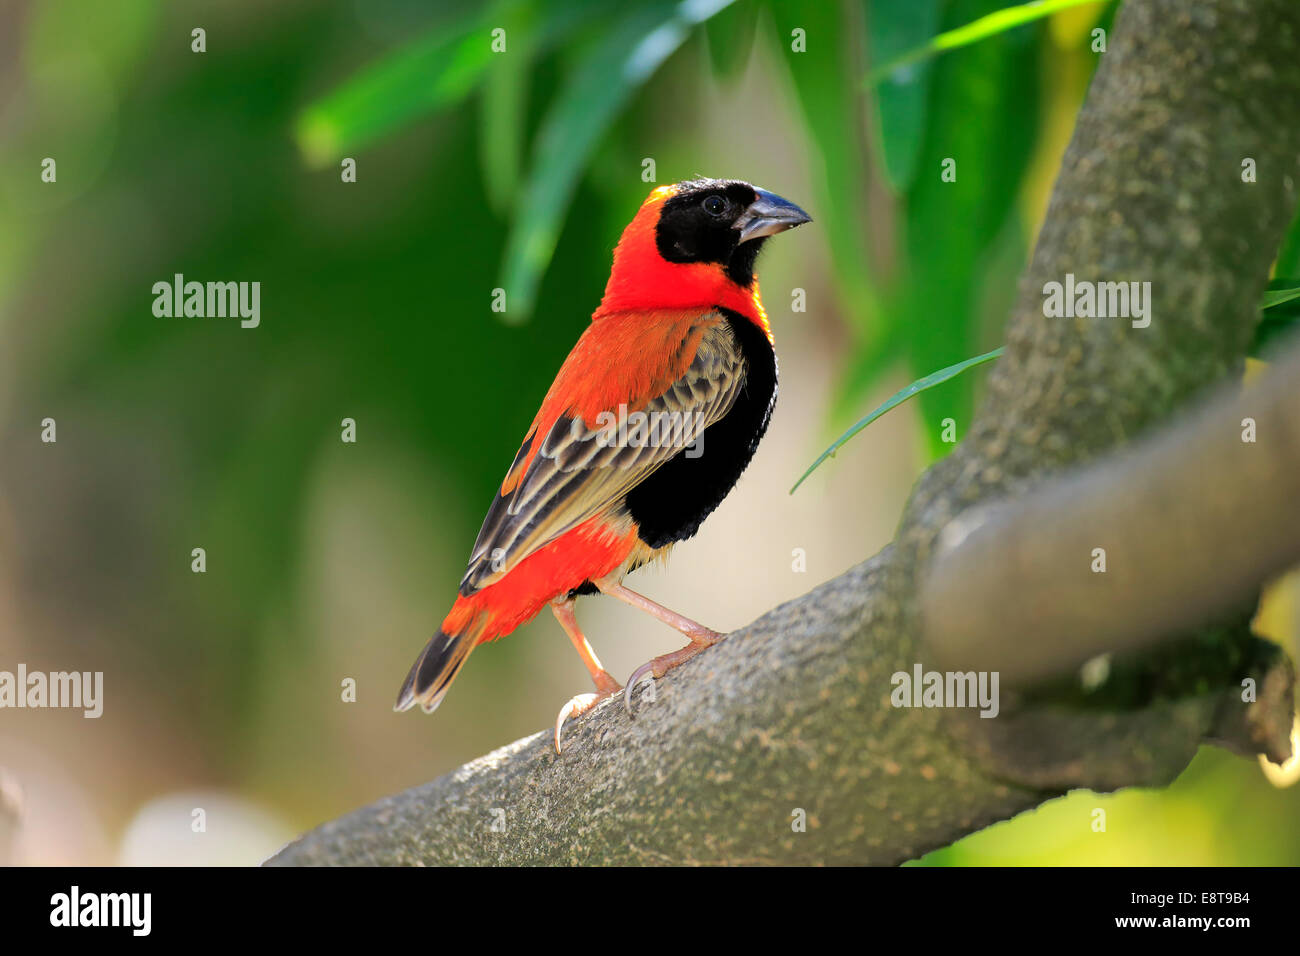 Southern Red Bishop (Euplectes orix), adult perched on tree, Western Cape, South Africa - Stock Image